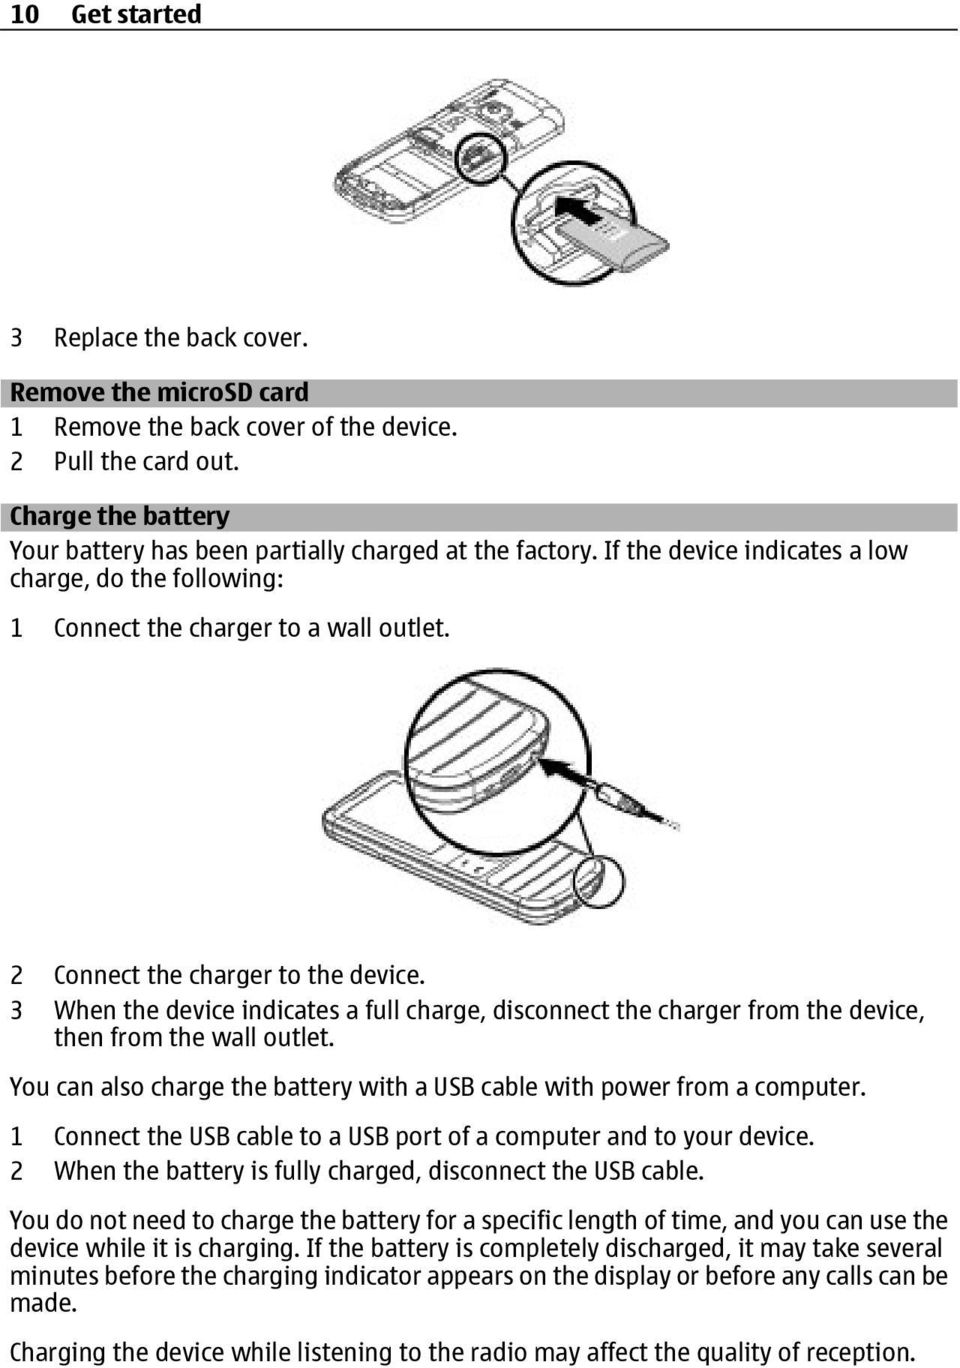 3 When the device indicates a full charge, disconnect the charger from the device, then from the wall outlet. You can also charge the battery with a USB cable with power from a computer.